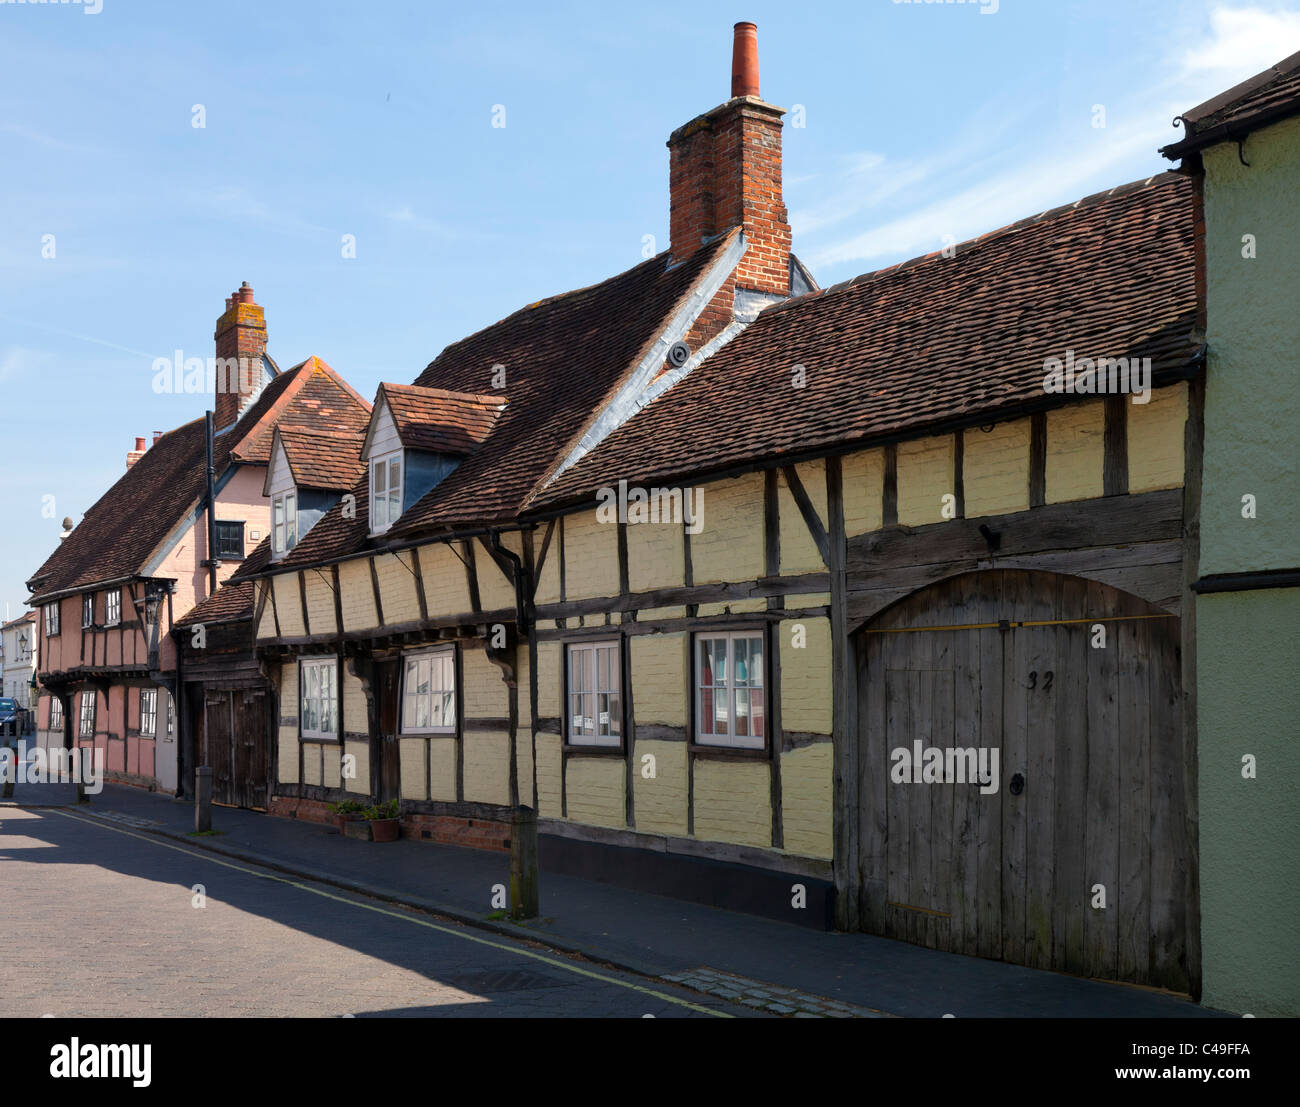 Habitation Maison ancienne Angleterre Hampshire Titchfield UK High Street bois ossature bois jaune en bois porte Photo Stock